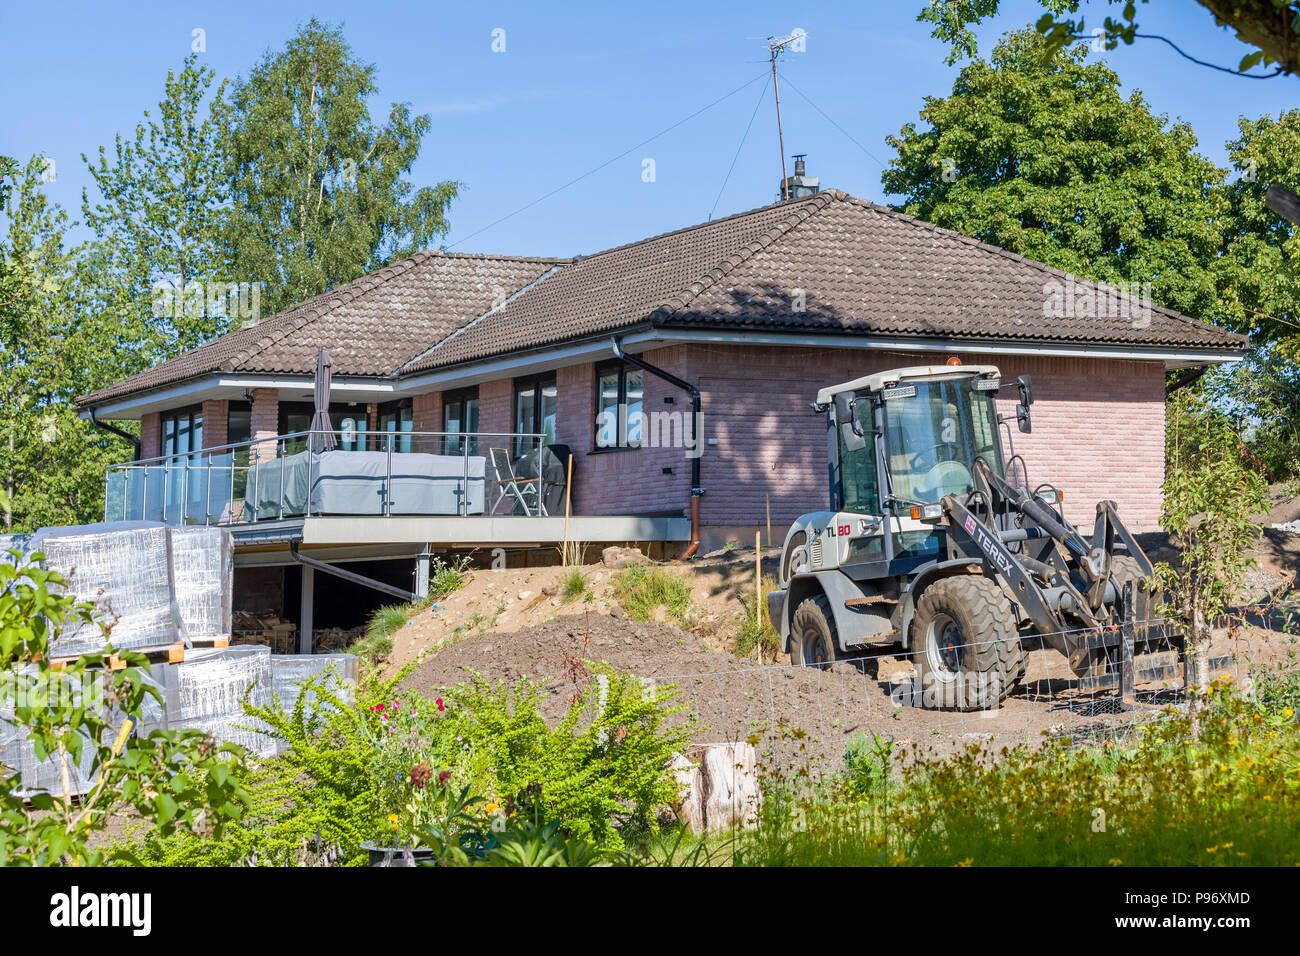 FLODA, SWEDEN - JULY 15 2018: Detached house undergoing home improvement and landscaping with front garden filled with building supplies such as brick - Stock Image